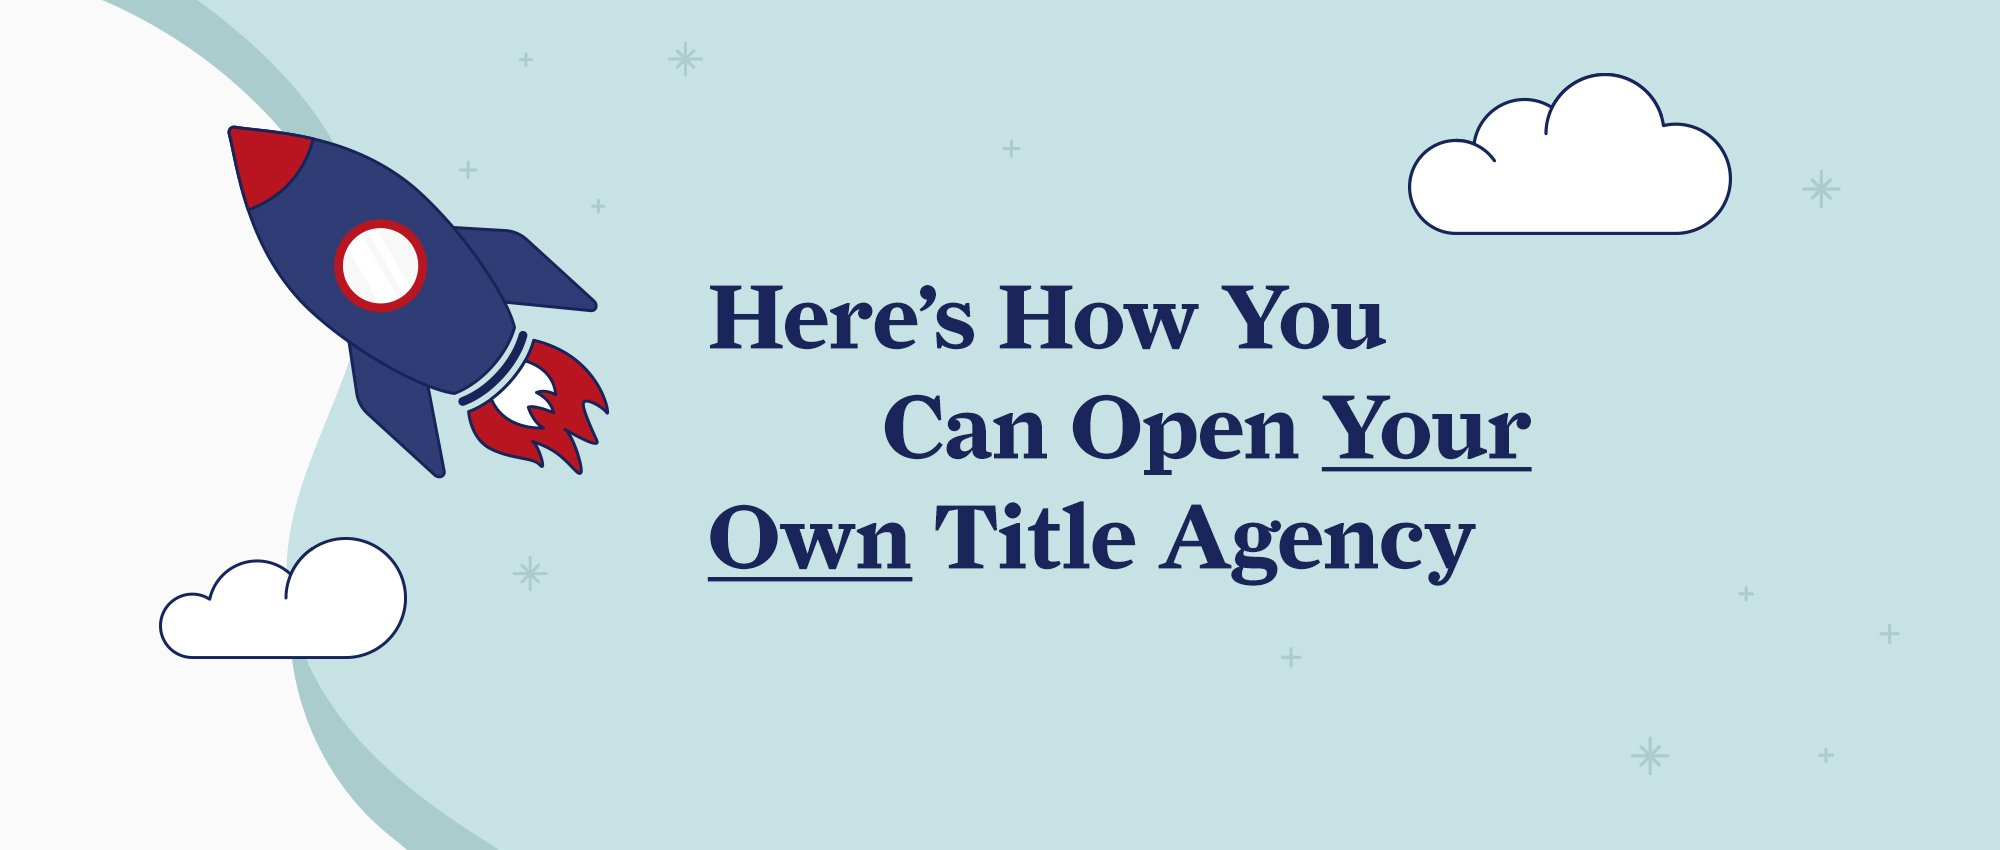 Rocketship illustration with the text 'here's how you can open your own title agency'.